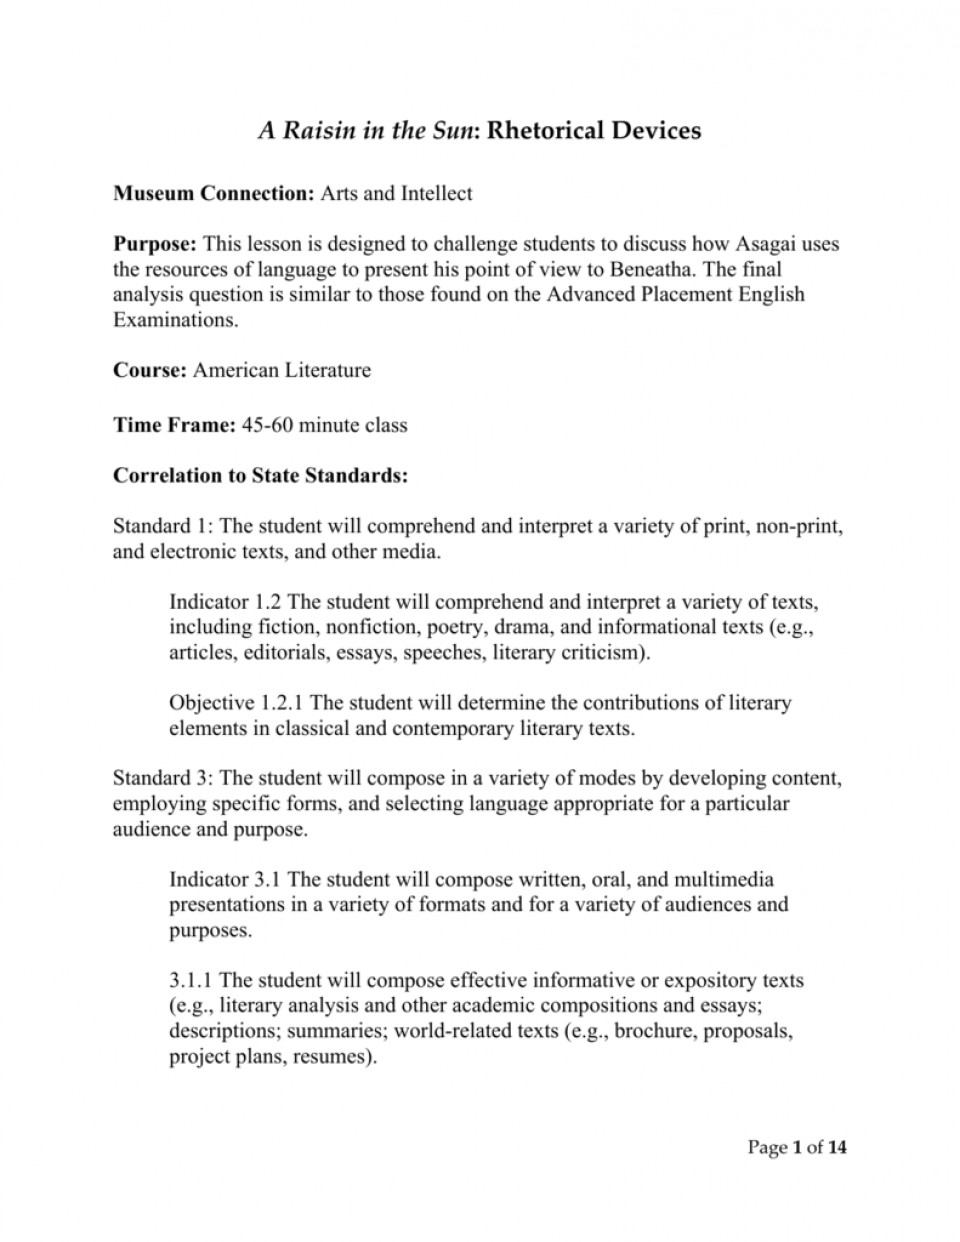 006 008718601 1 Essay Example Why Do Authors Use Rhetorical Devices In Frightening Essays Brainly 960